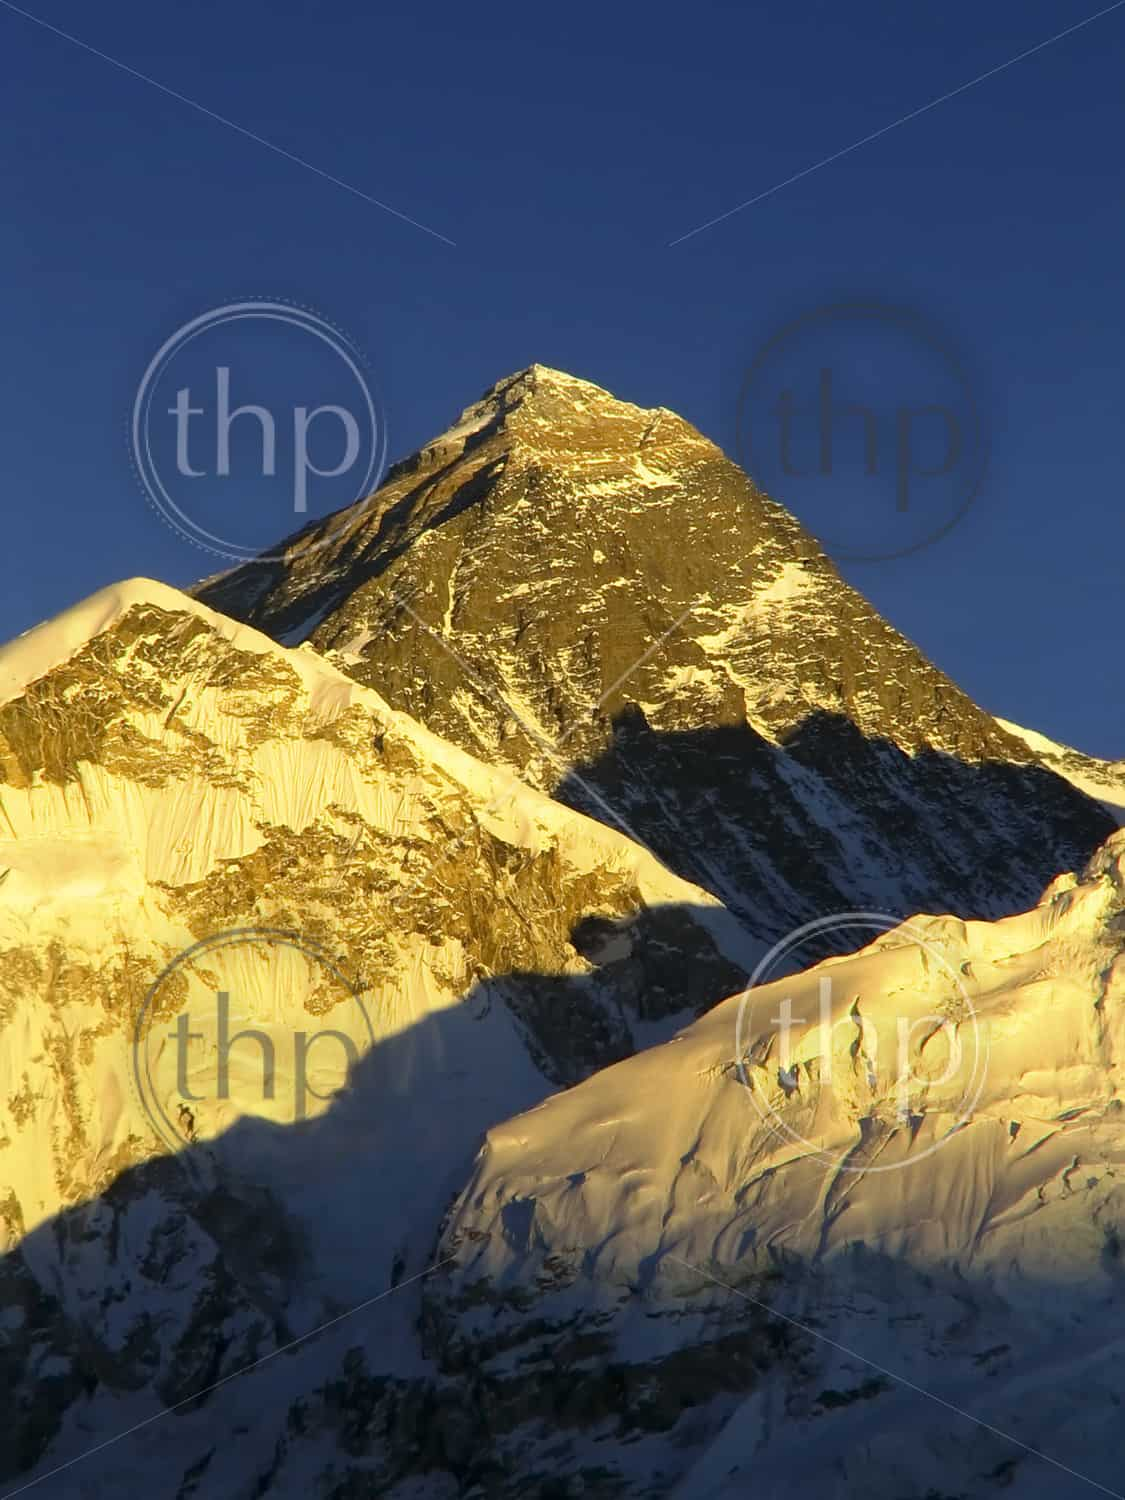 World's highest mountain, Mt Everest at 8850m, and Nuptse to the right in the Himalaya, Nepal